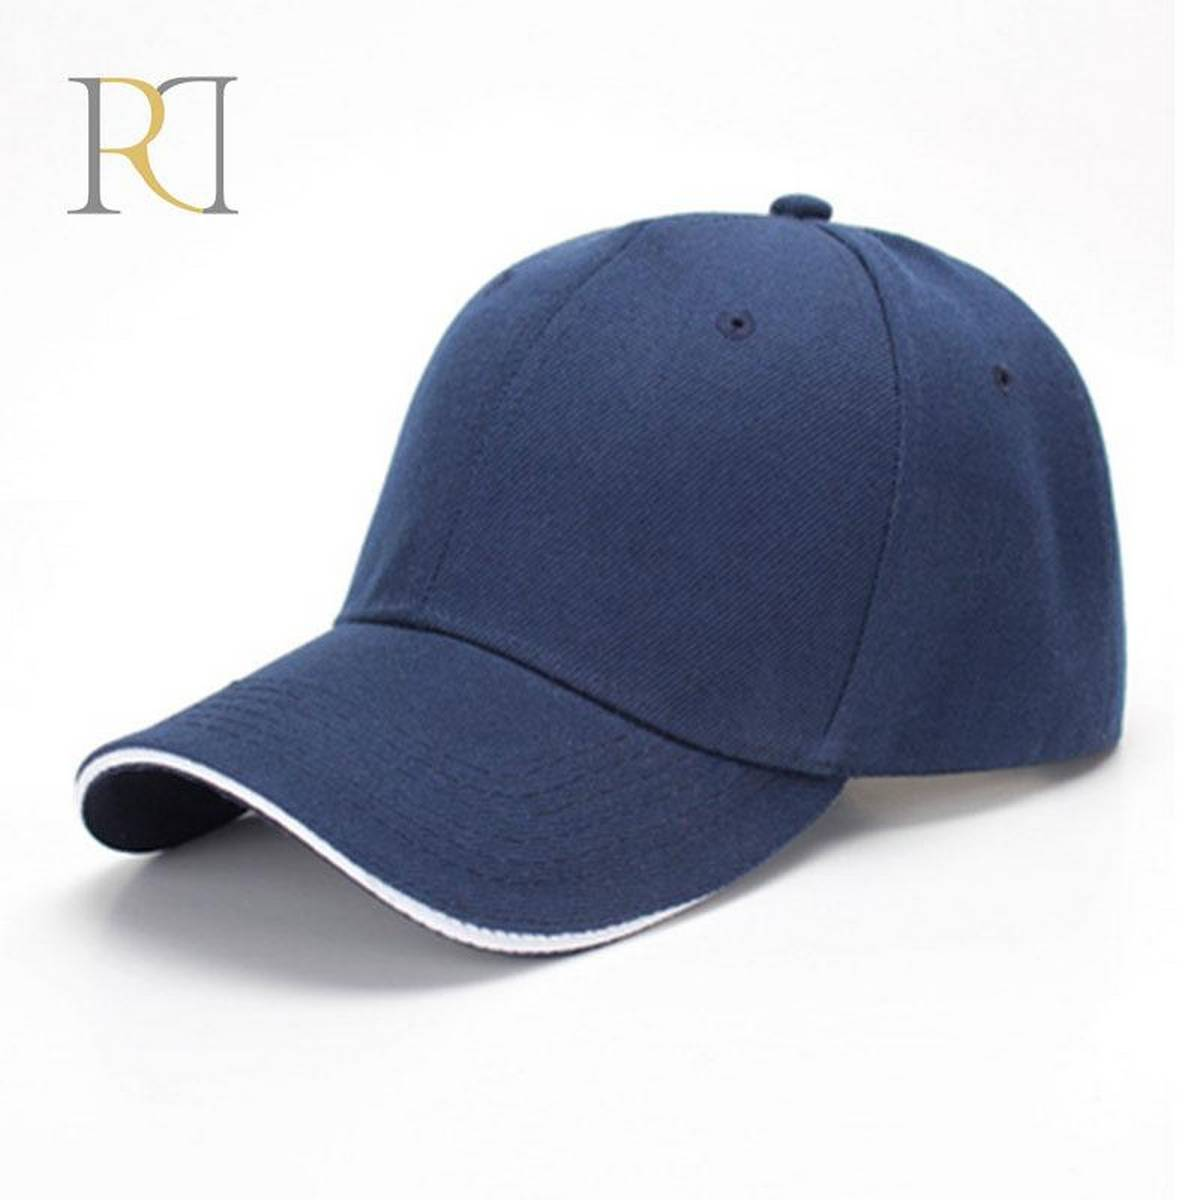 Mens Cap For Summer Hats With Adjustable Buckle